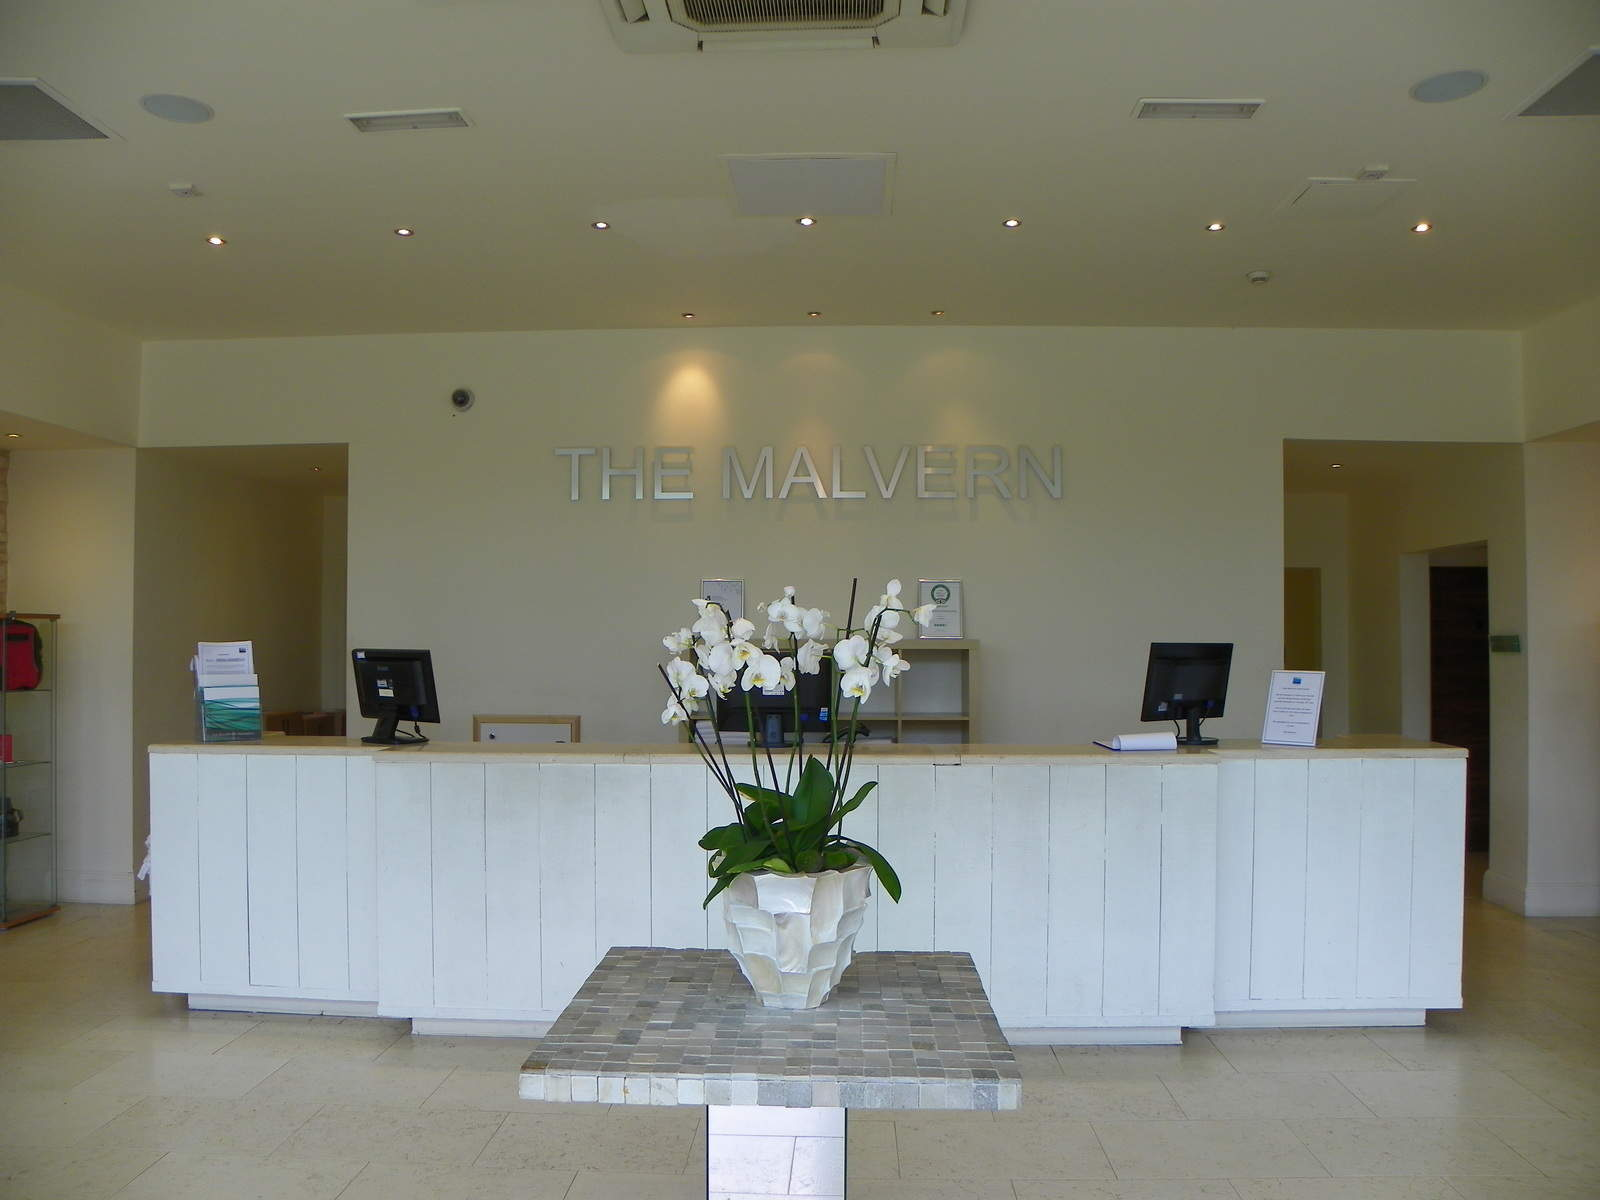 The Malvern Spa, Worcestershire: Full and comprehensive review.